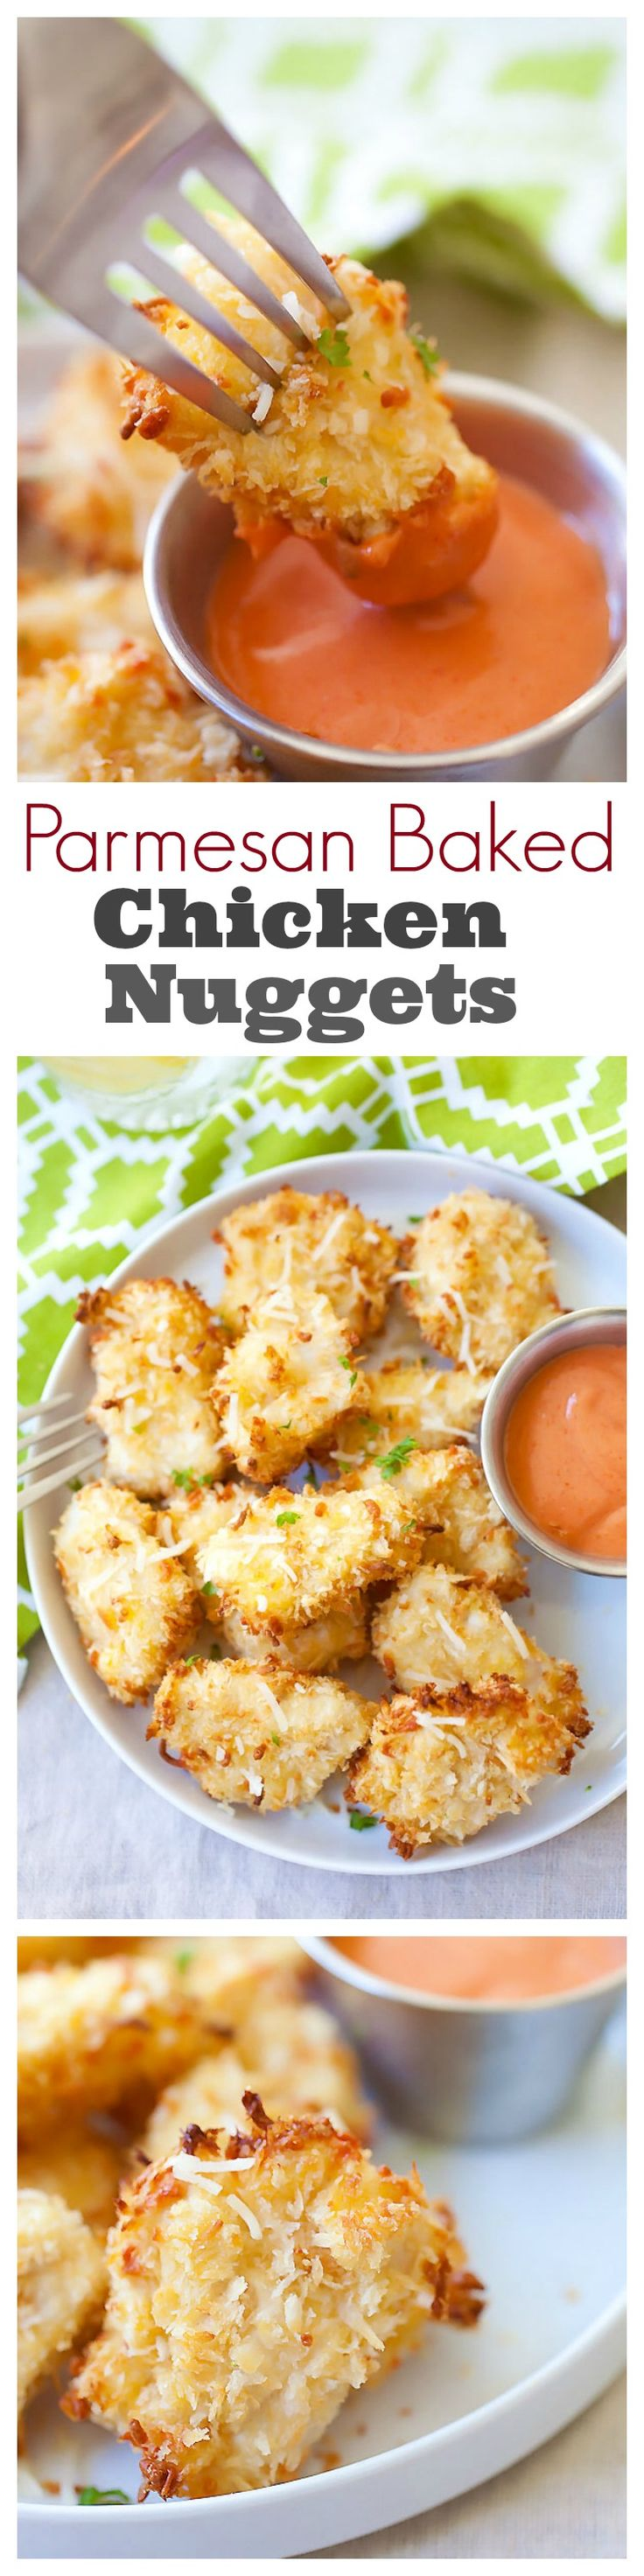 Parmesan Baked Chicken Nuggets – crispy chicken nuggets with real chicken with no frying. Easy and yummy. #tailgating #foodporn #dan330 http://livedan330.com/2015/01/22/parmesan-baked-chicken-nuggets/